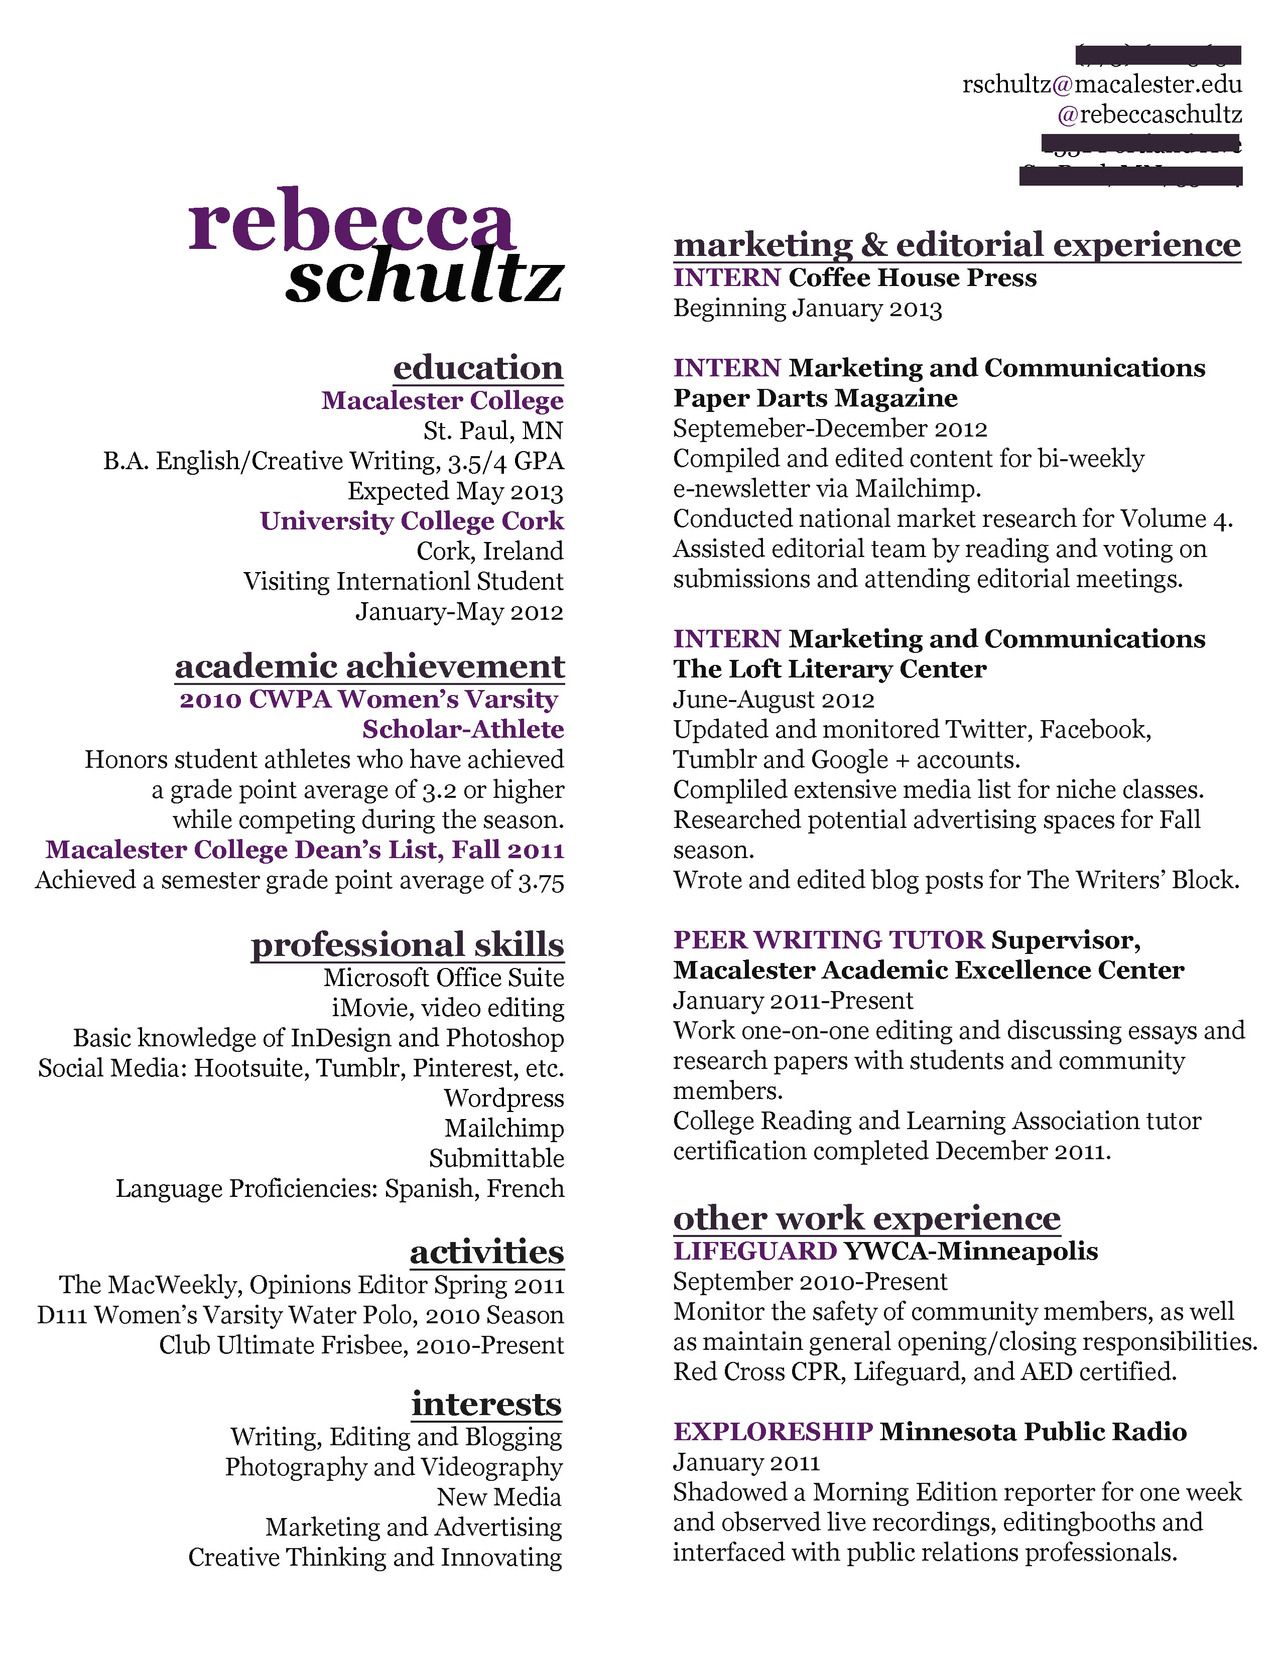 creative resume  writer resume  entry level resume  marketing resume  advertising resume